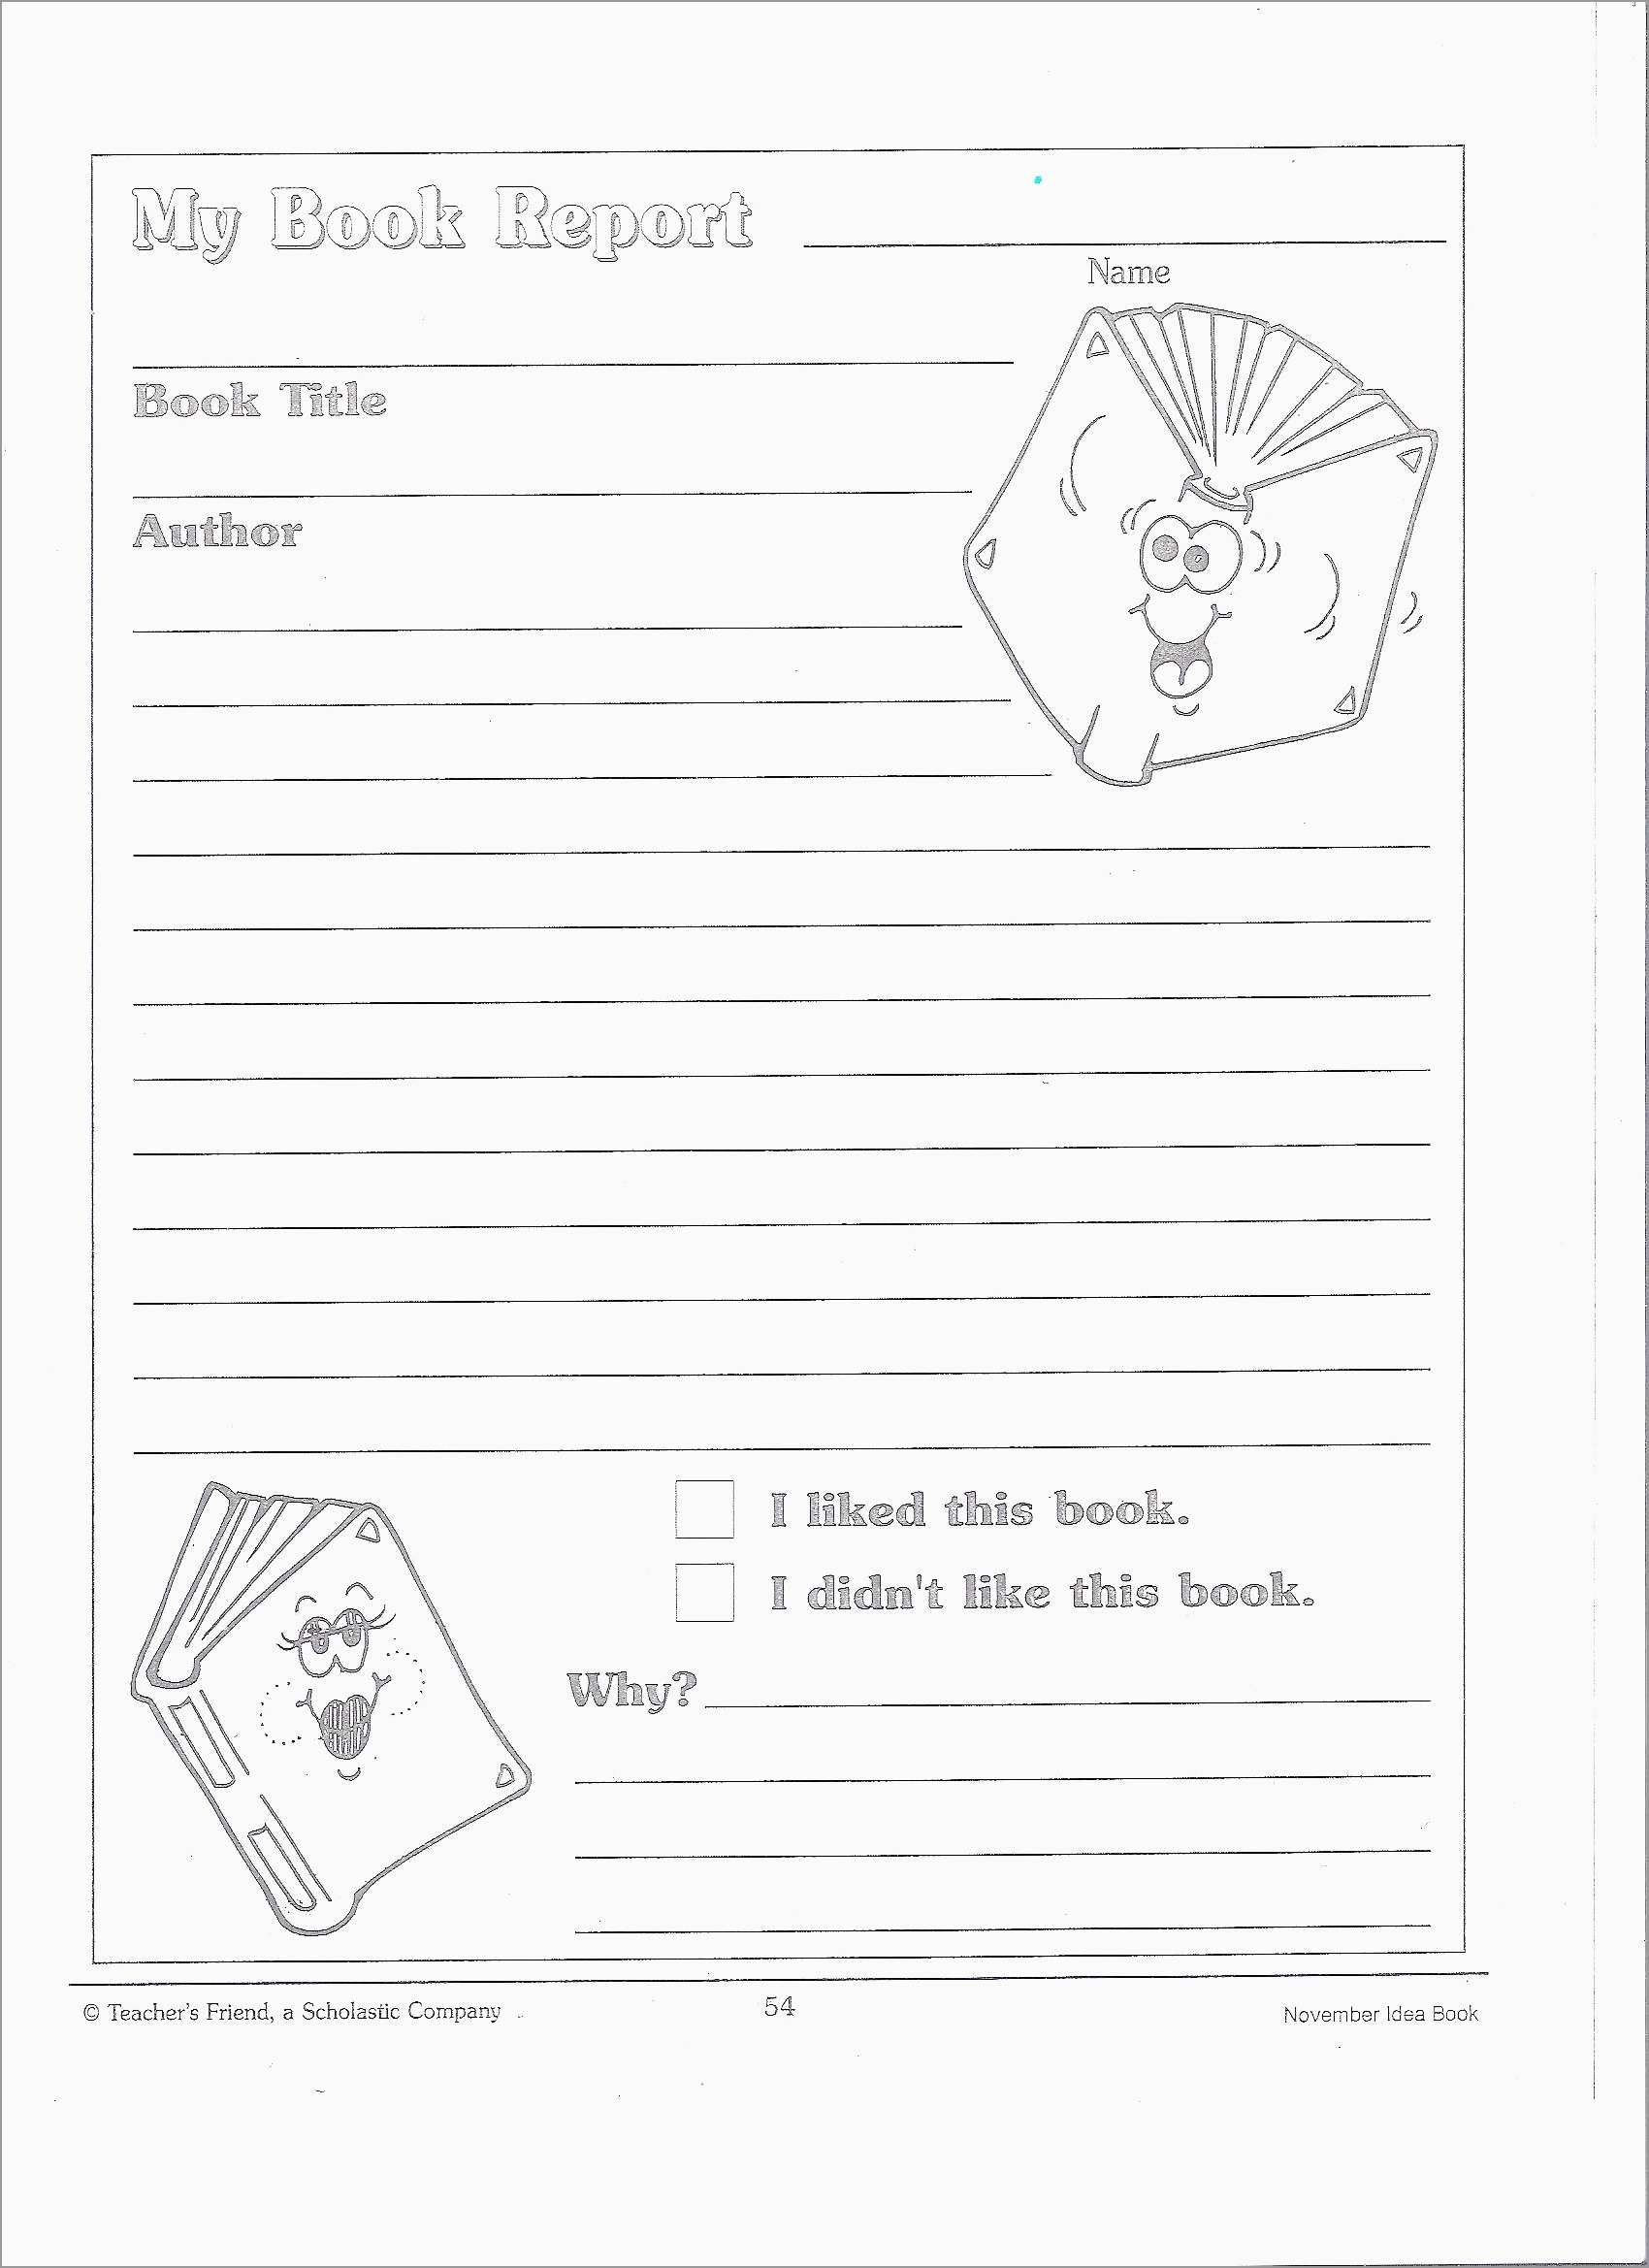 Book Report Template 2Nd Grade Free Beautiful Grade 4 Book Report - Free Printable Book Report Forms For Second Grade